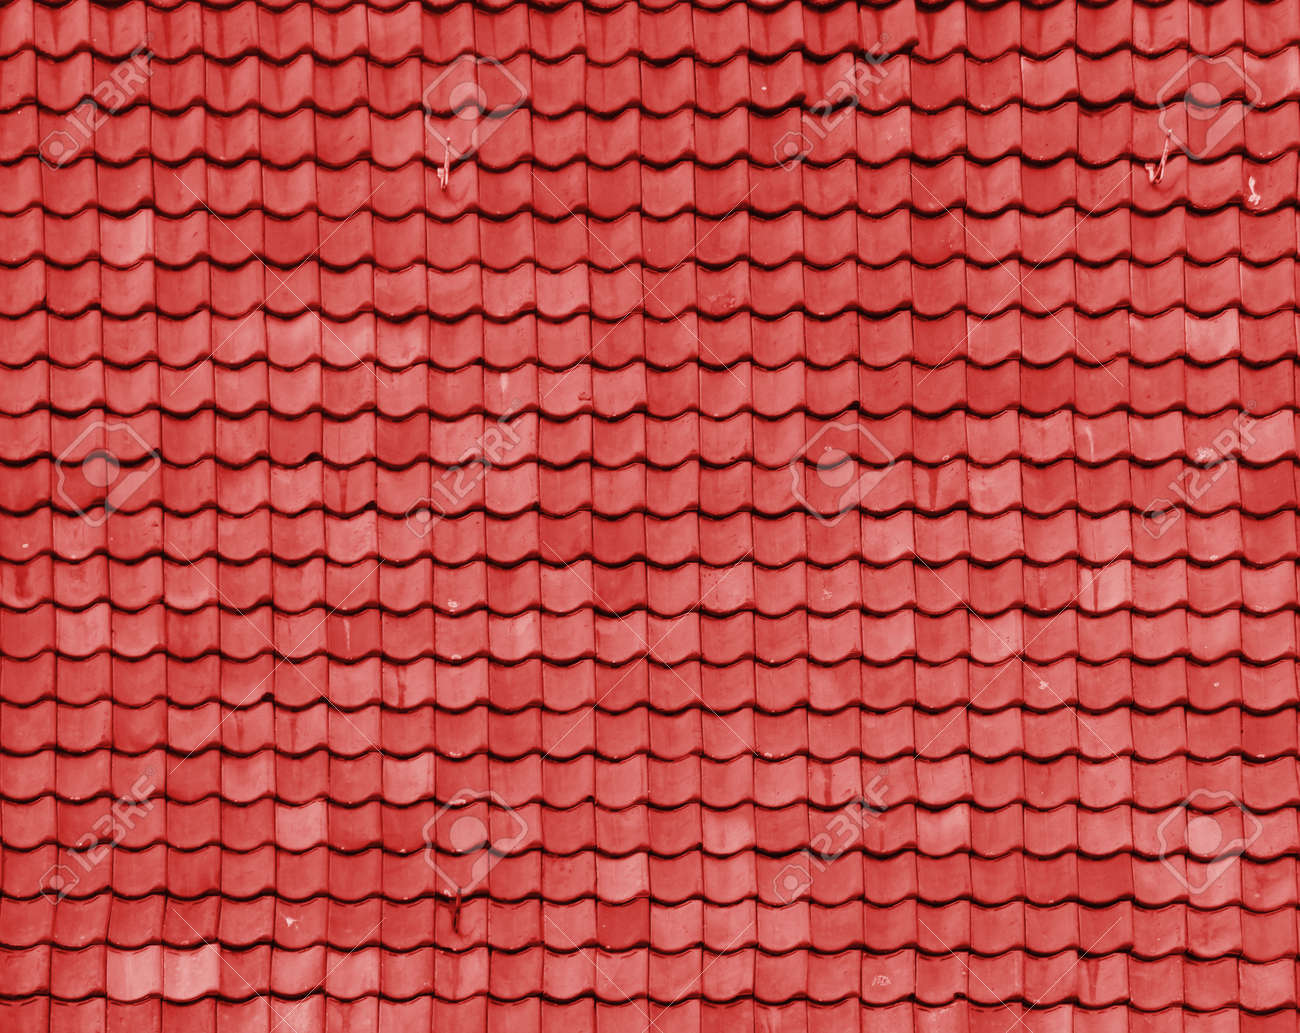 Brick Roof Texture red brick roof stock photo, picture and royalty free image. image